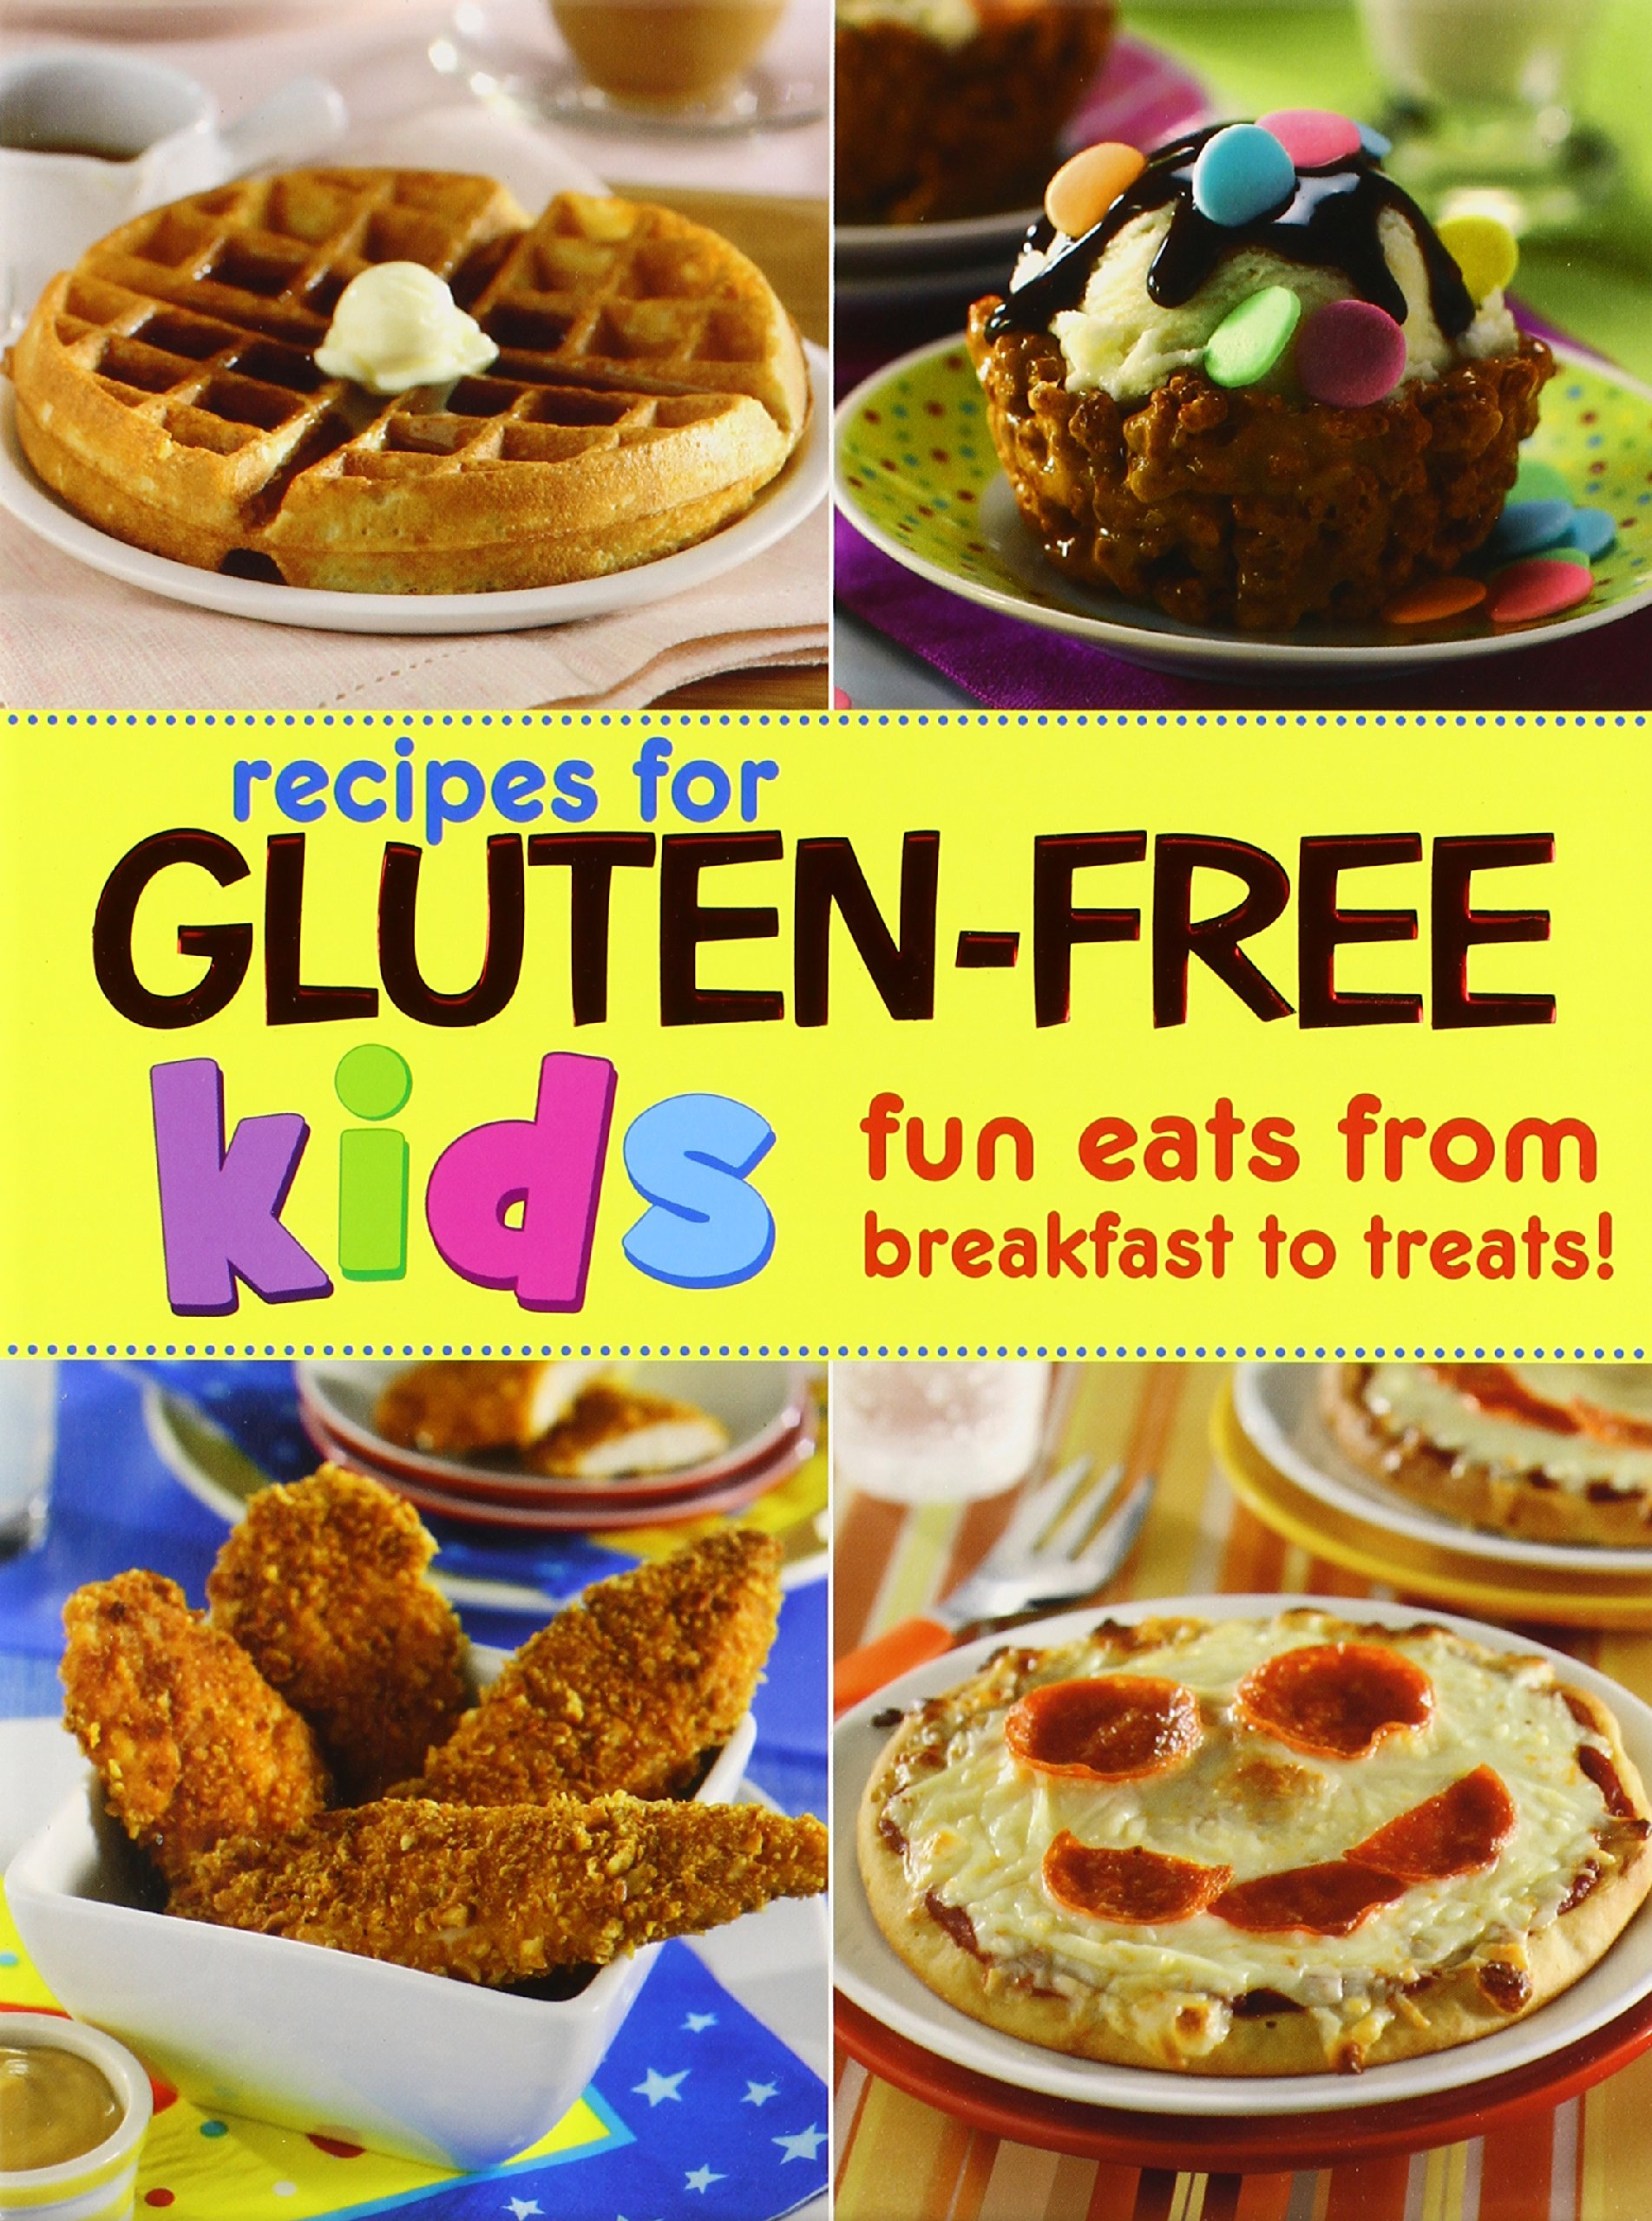 Gluten Free Recipes For Kids Fun Eats From Breakfast To Treats